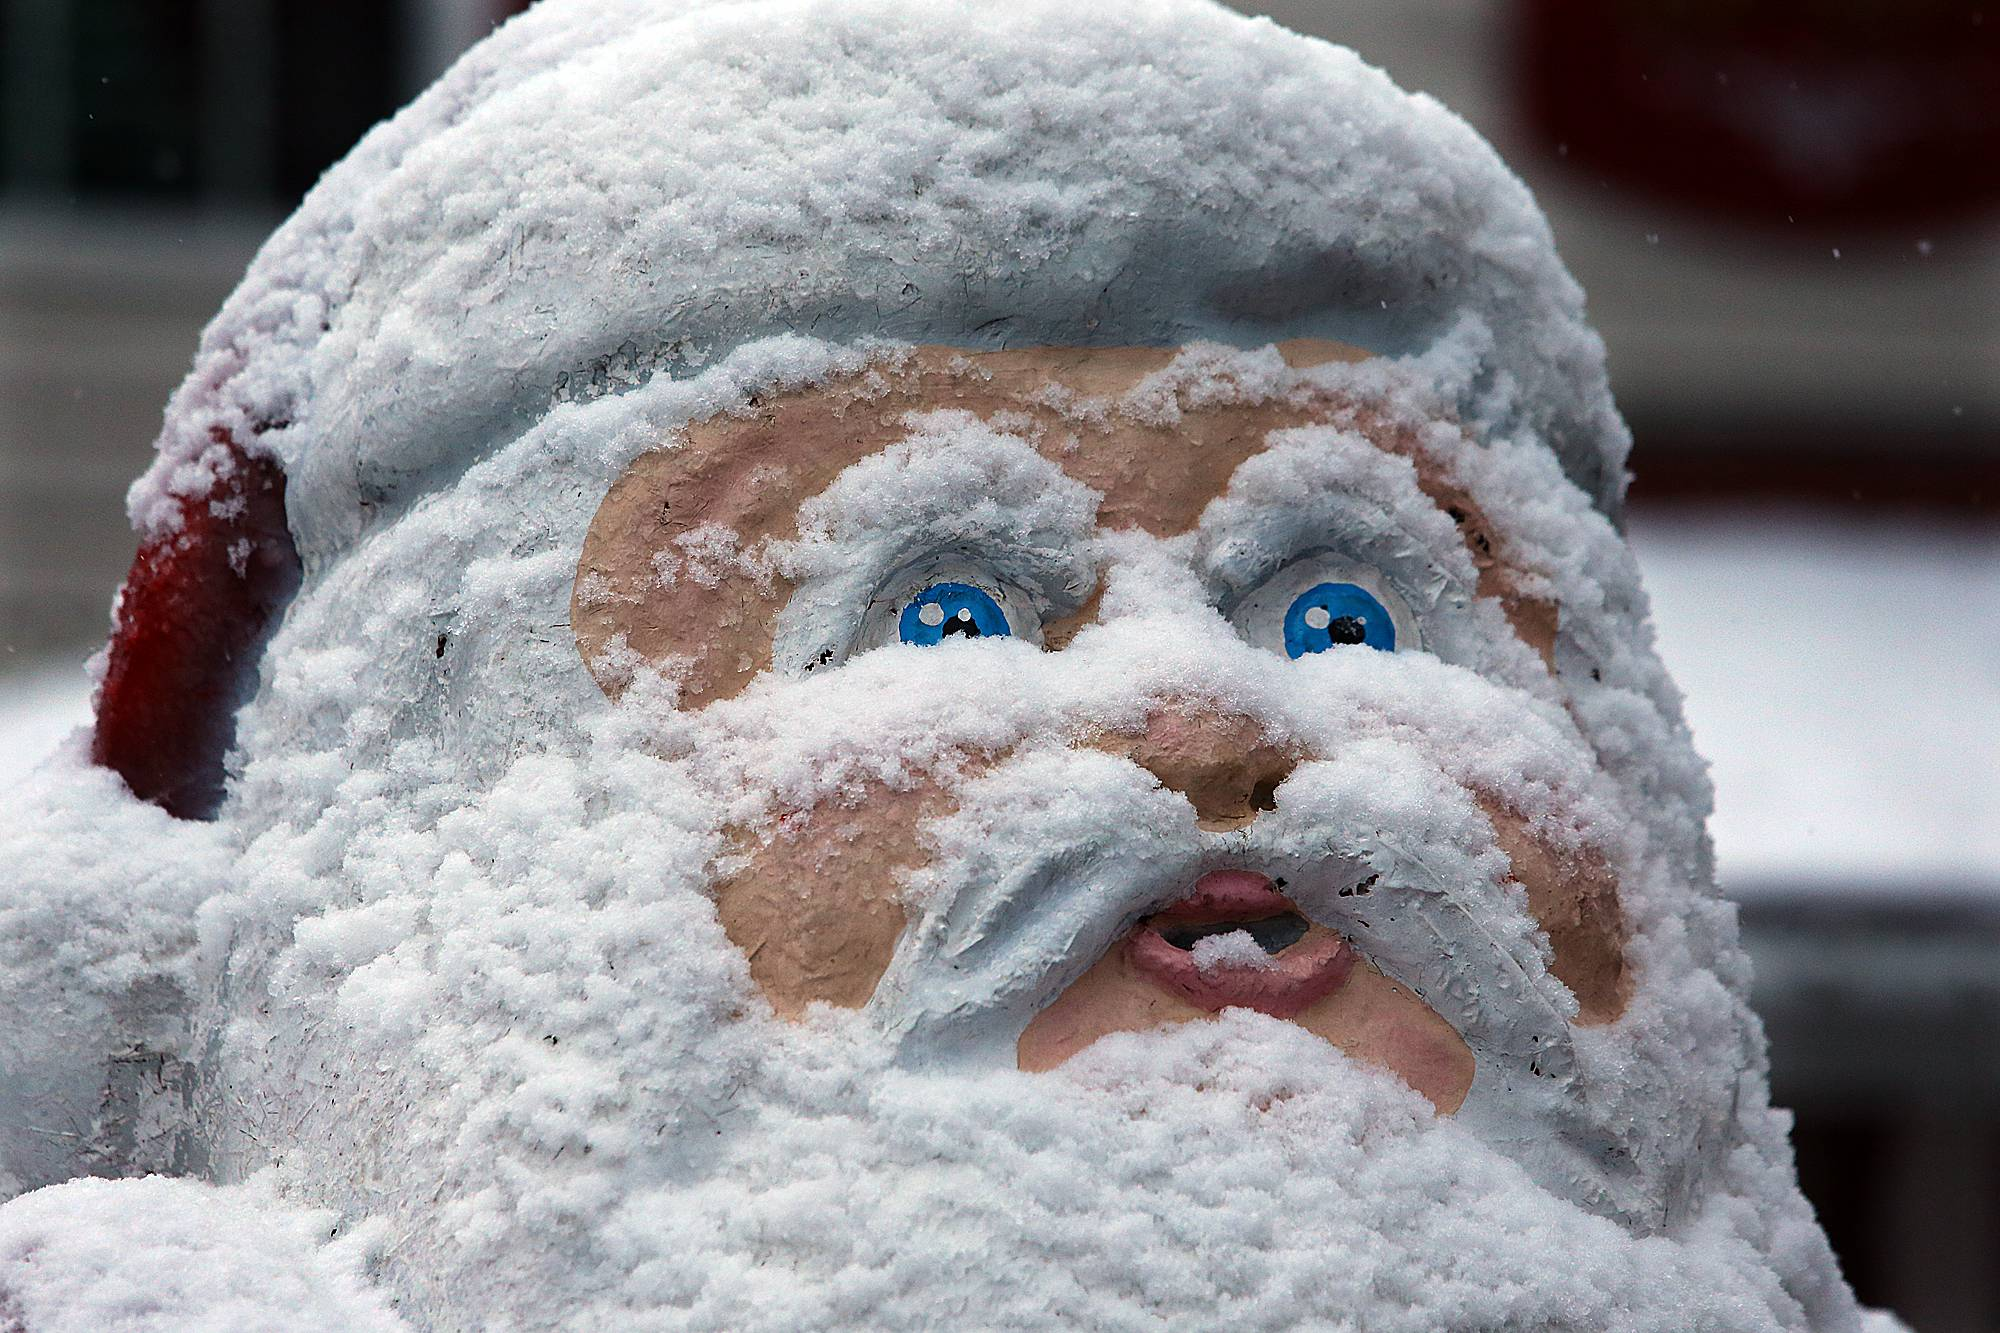 A Santa Claus statue displayed outside The Christmas Shoppe sports a frozen face as it becomes covered in snow on Tuesday, Feb. 11, 2014, in Helen, Ga.